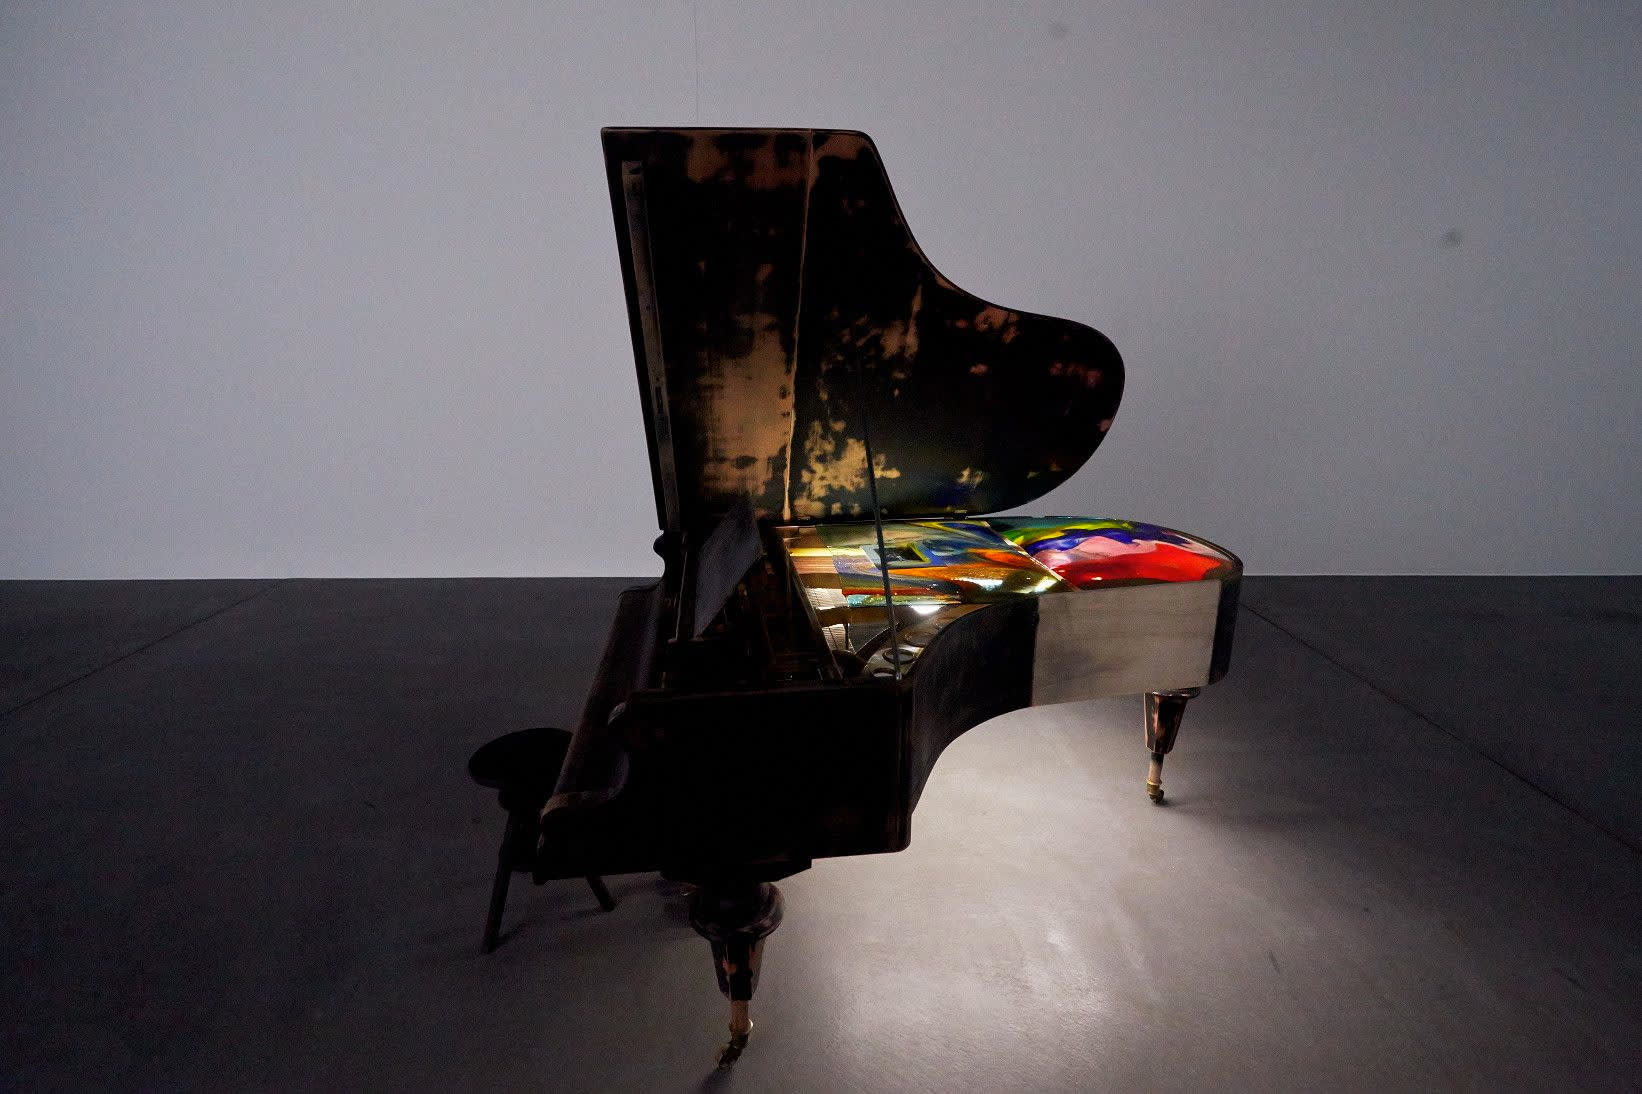 Installation of piano. Inside of piano is painted in multiple colored amorphous shapes.